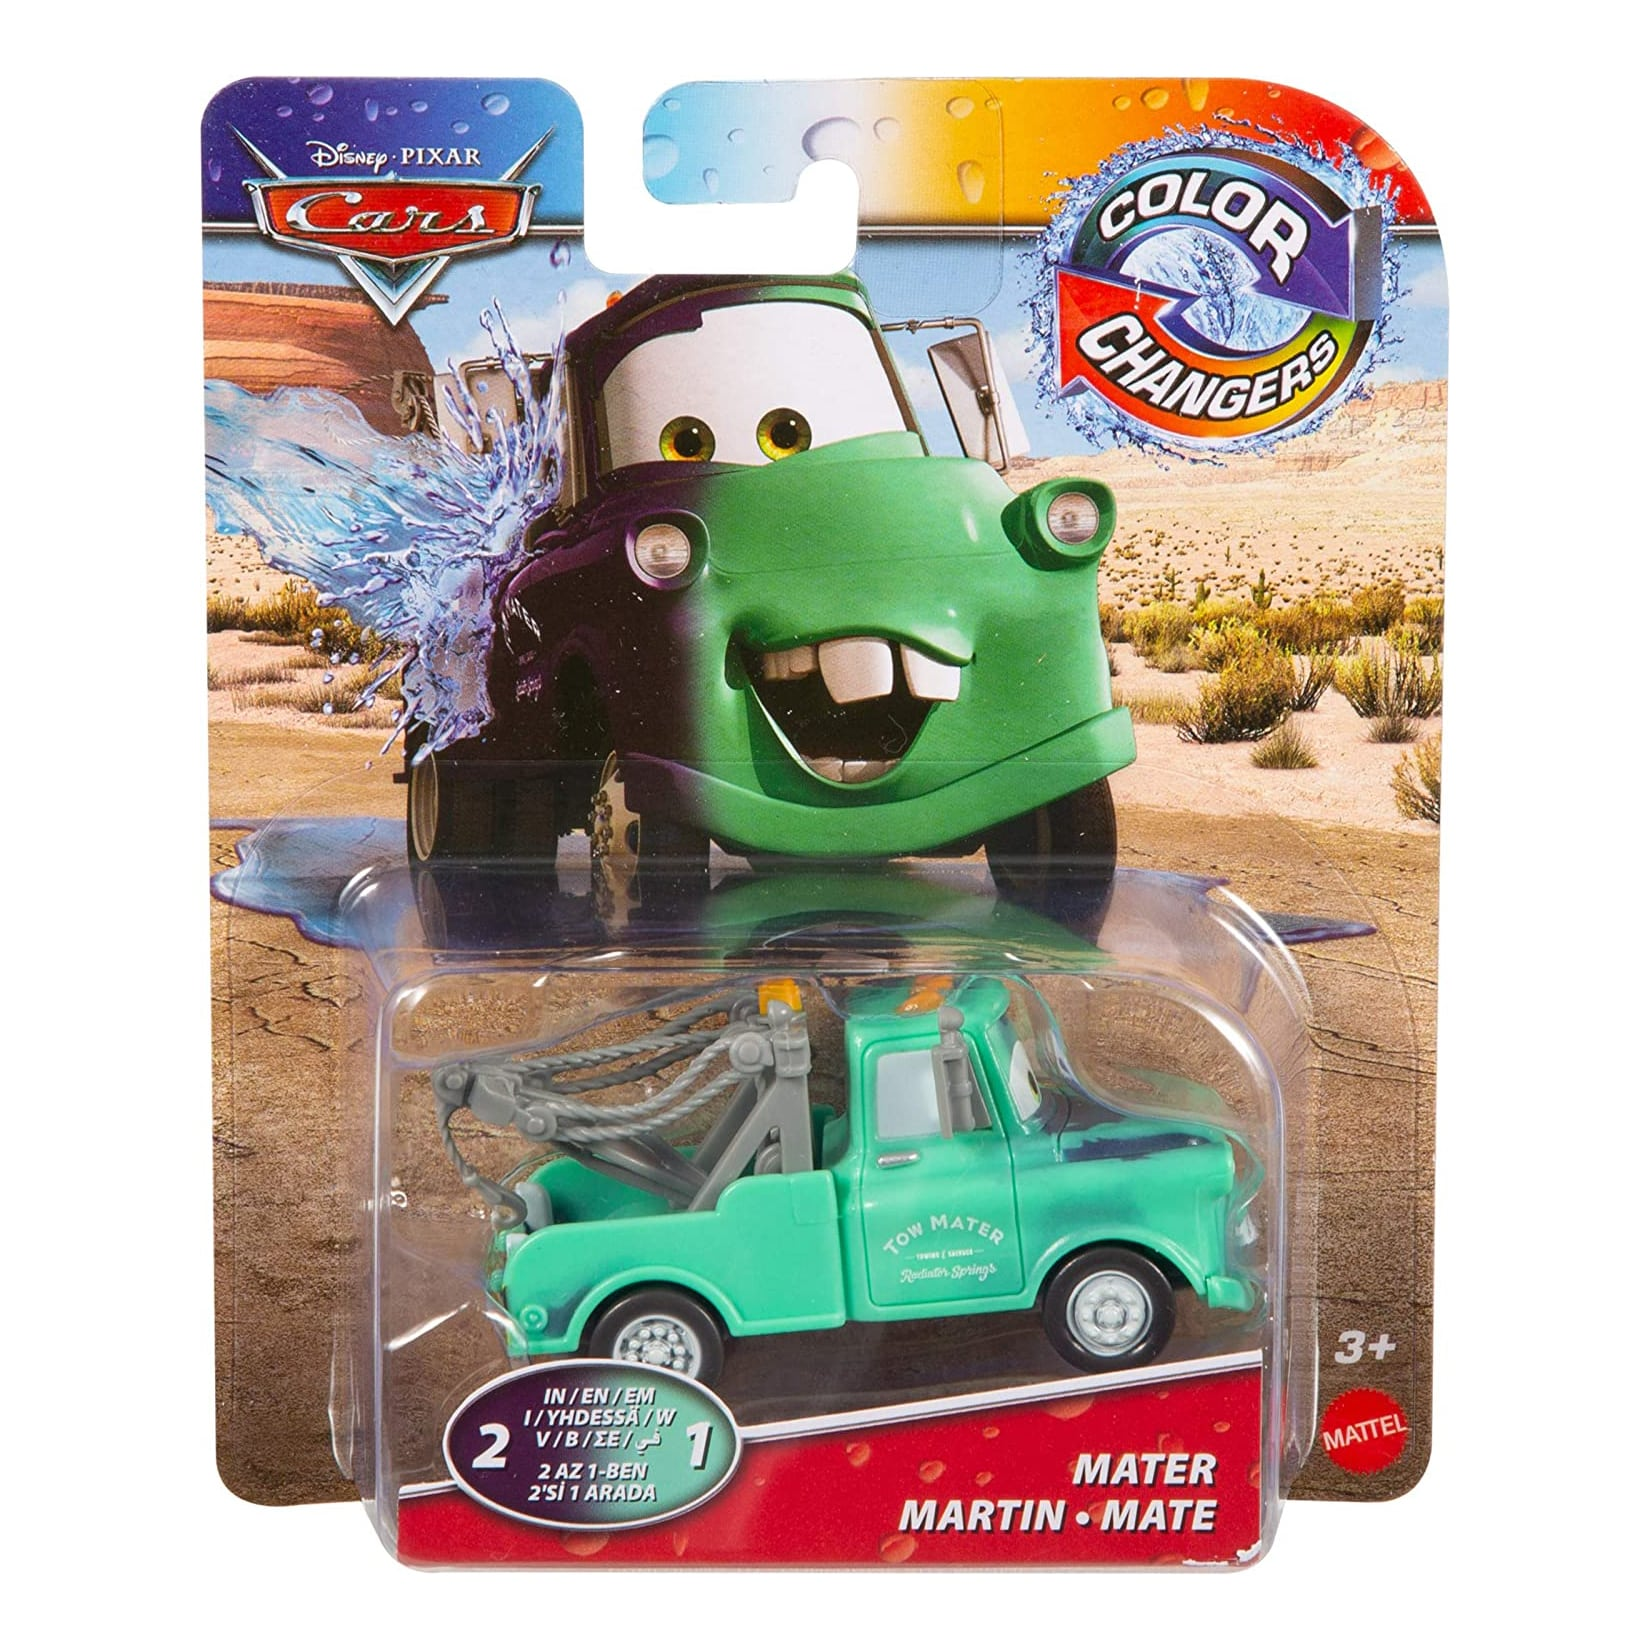 Disney Pixar Cars 1 55 Color Changers Tow Mater At Toys R Us